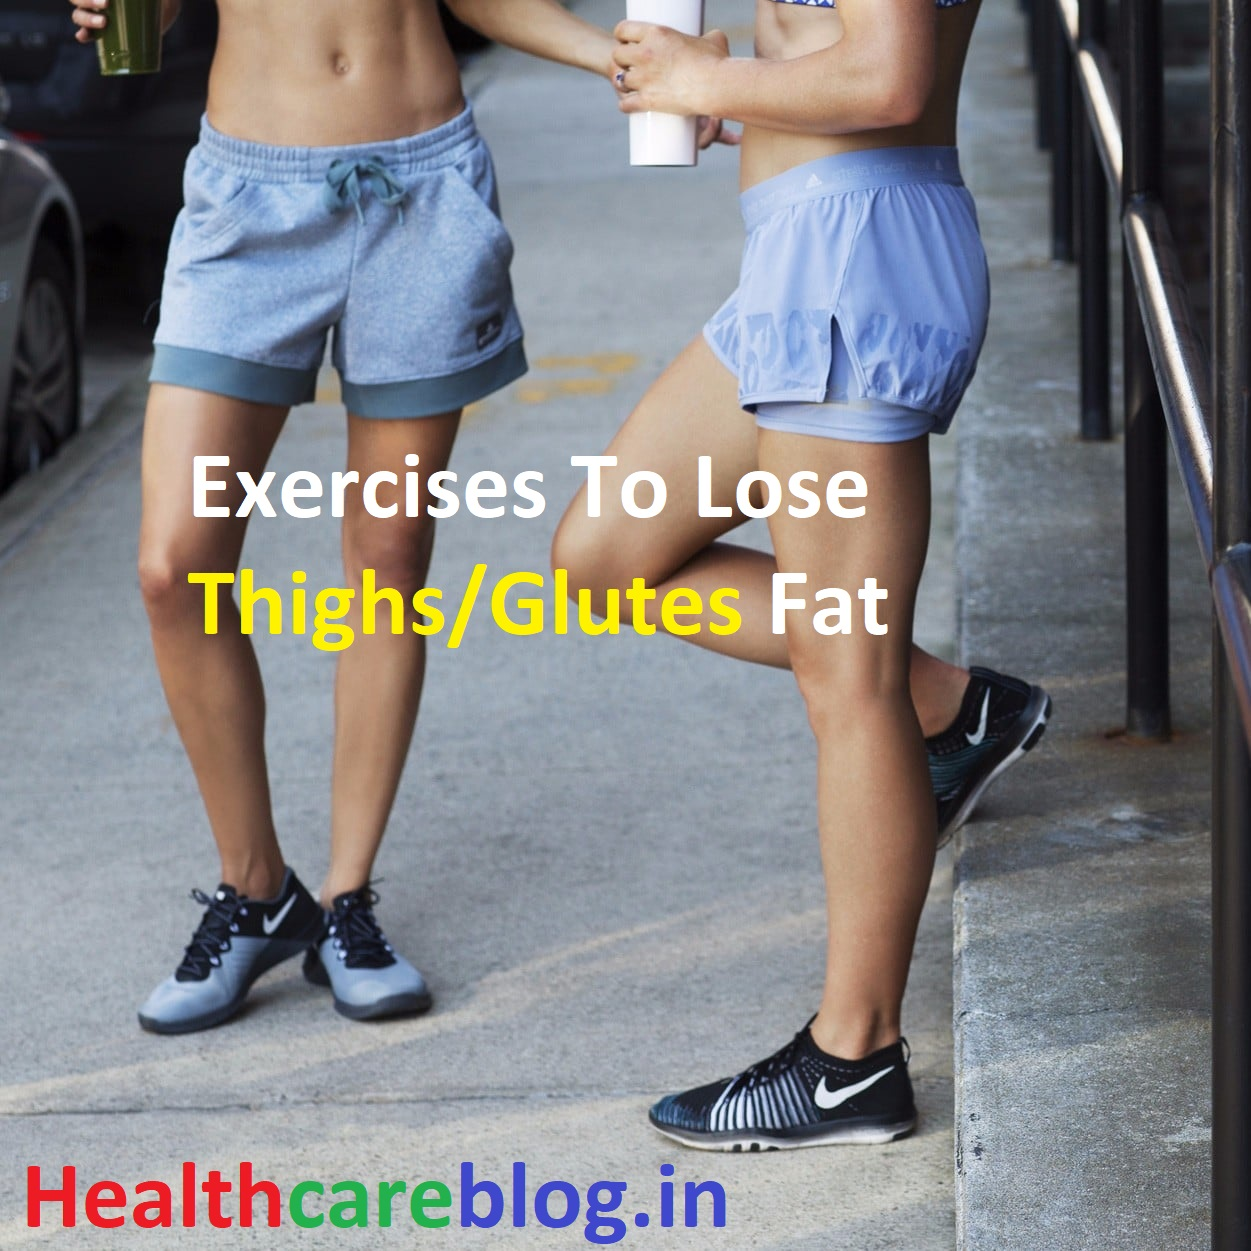 Exercises To Lose Thighs Glutes Fat - Healthcare Blog